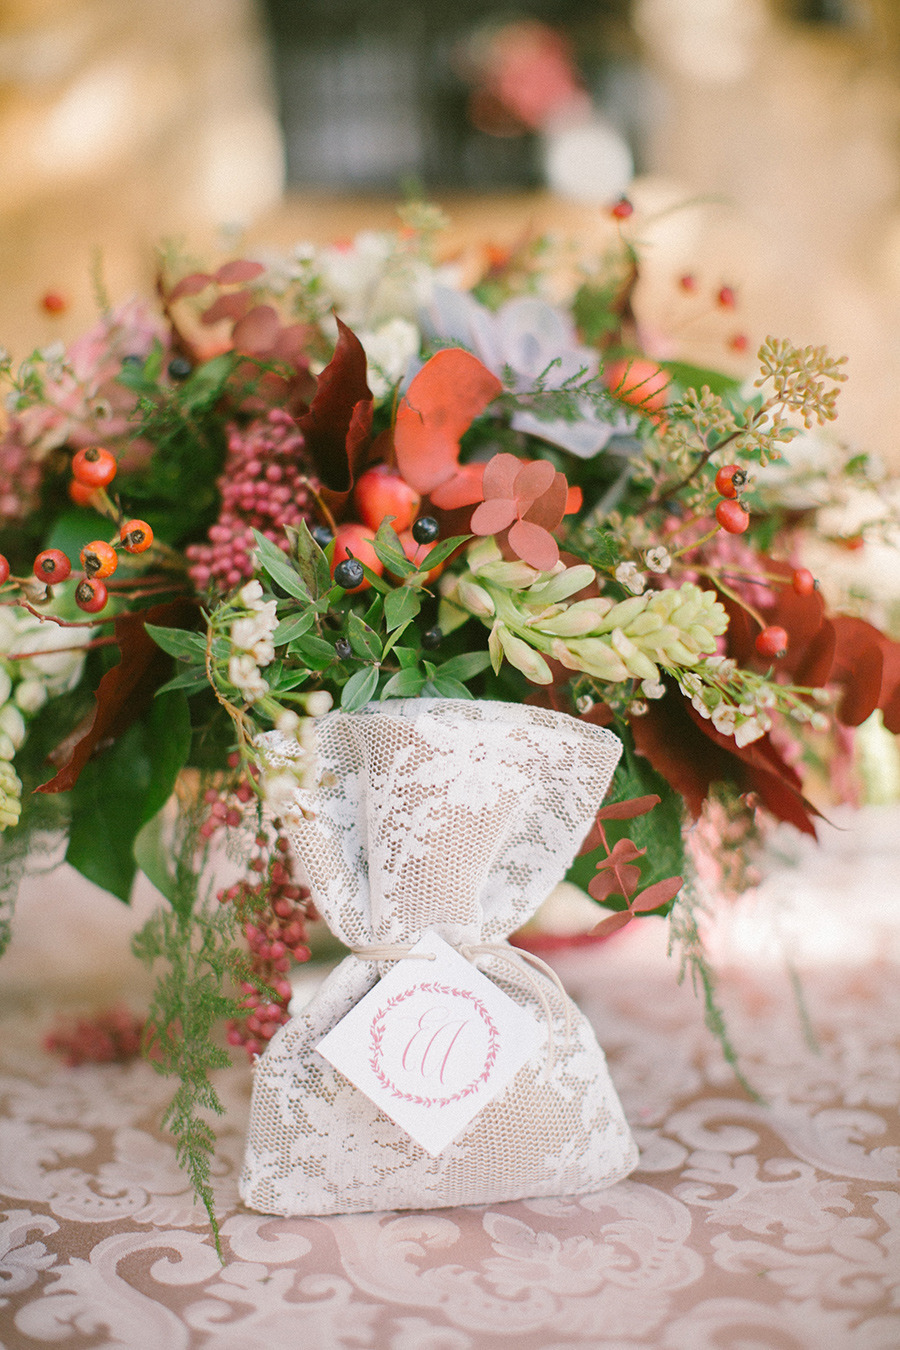 winter wedding favor - Boho Chic Wedding Inspiration Shoot from Anna Roussos Photography - annaroussos.com | Read more : https://www.fabmood.com/boho-chic-wedding-inspiration-shoot-anna-roussos-photography